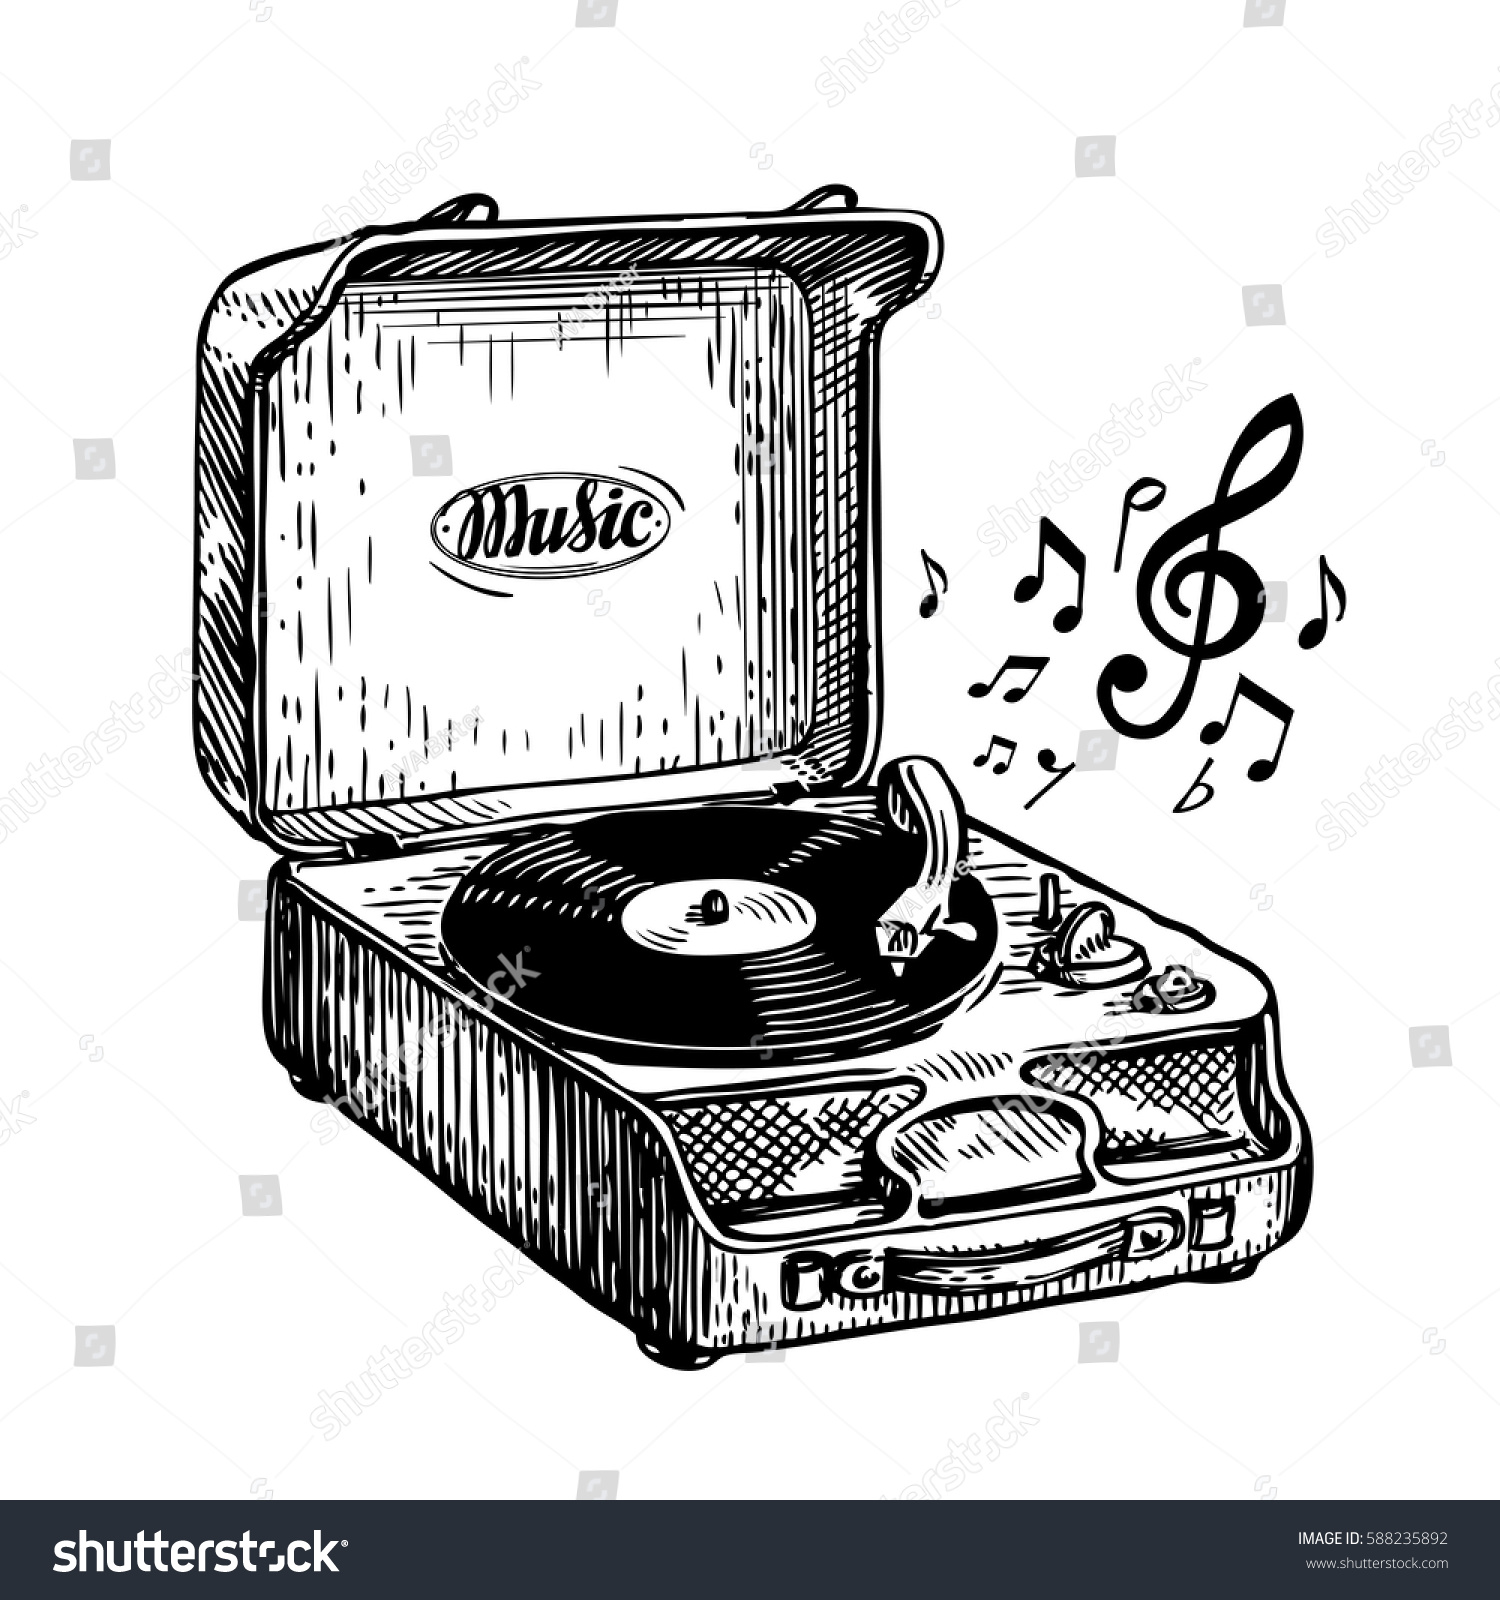 Vintage Turntable Record Player Vinyl Record Stock Vector